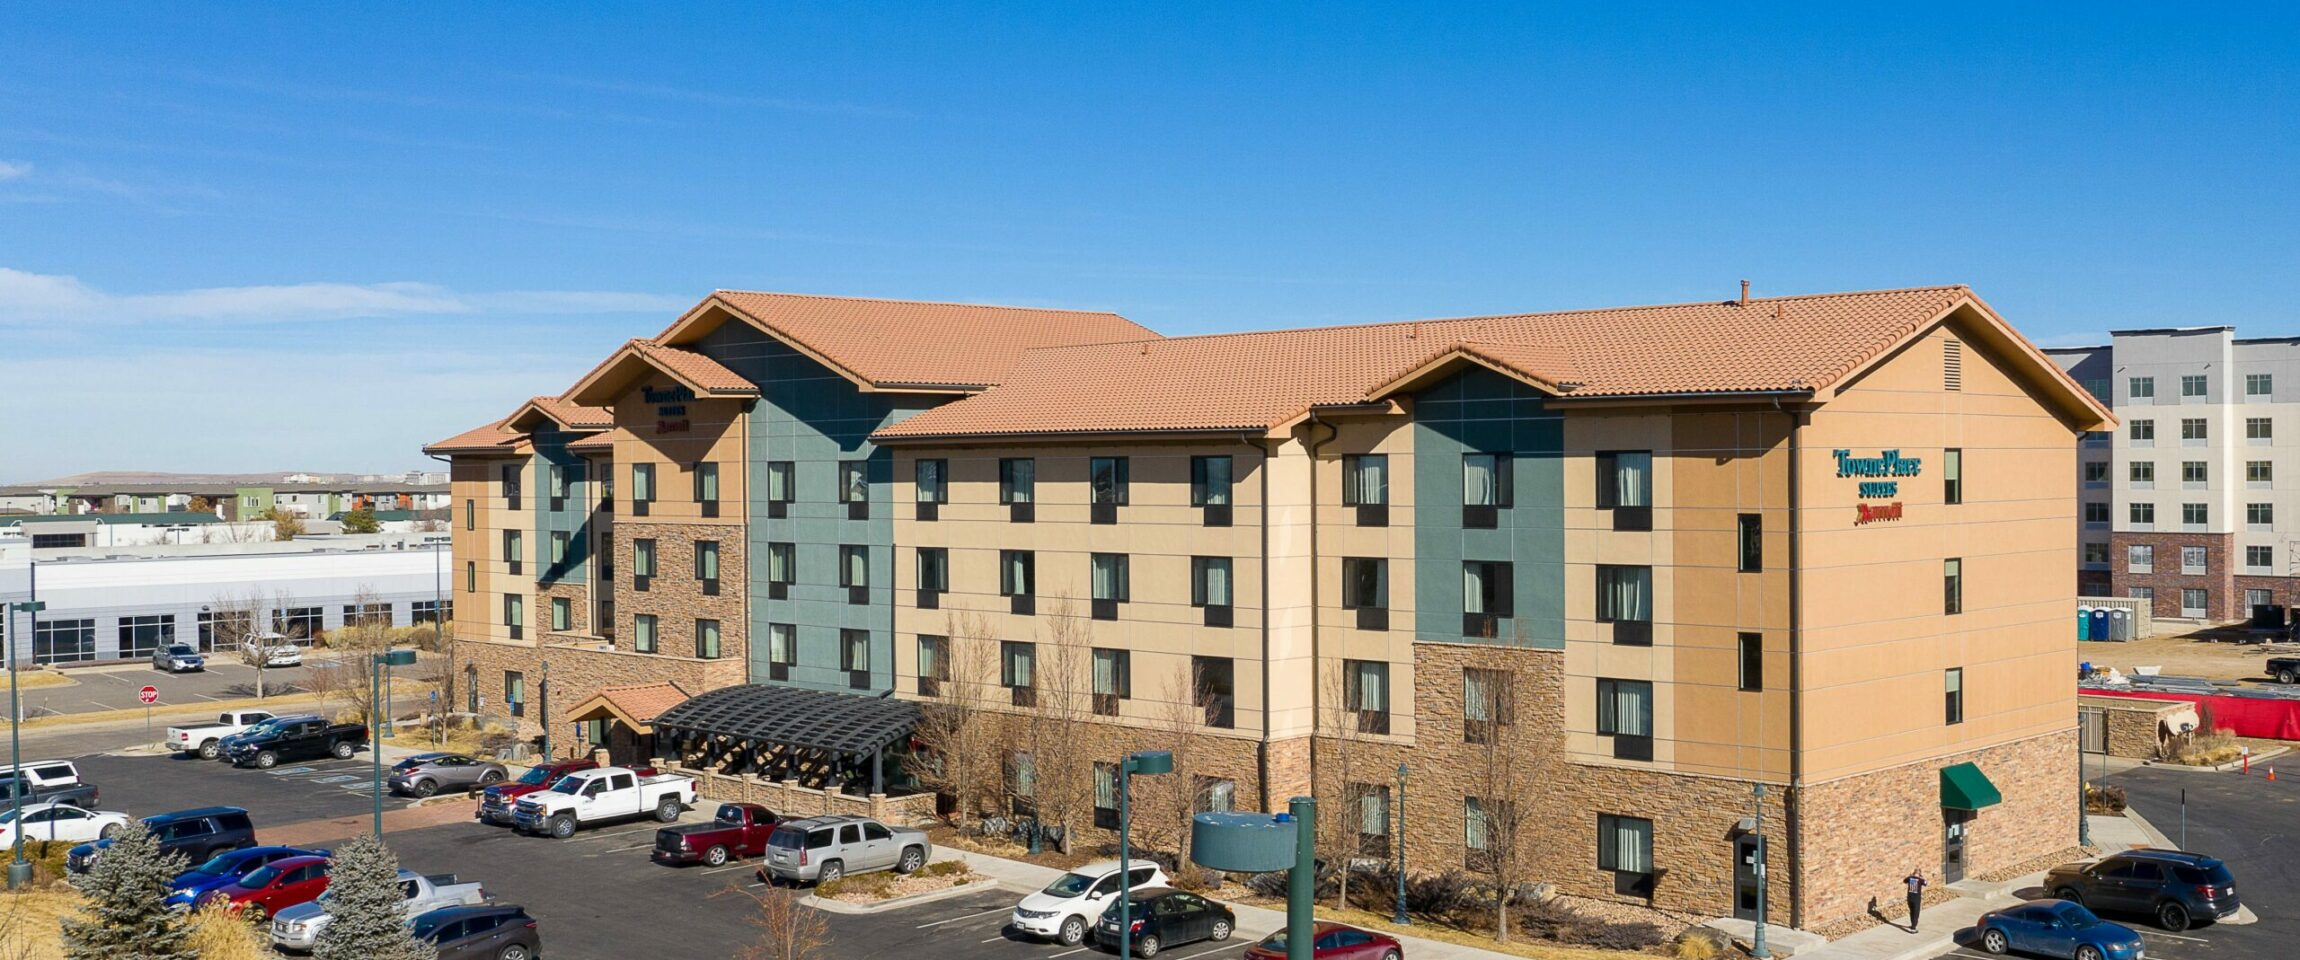 Pennbridge acquired the 99 room Marriott TownePlace Suites Denver Airport @ Gateway Park in May of 2021. The Hotel is located in the middle of Gateway Park which is only 4 miles from the Green Valley Ranch Golf Club, 6 miles from the Aurora Fox Arts Center, and 11 miles… Continue Reading..